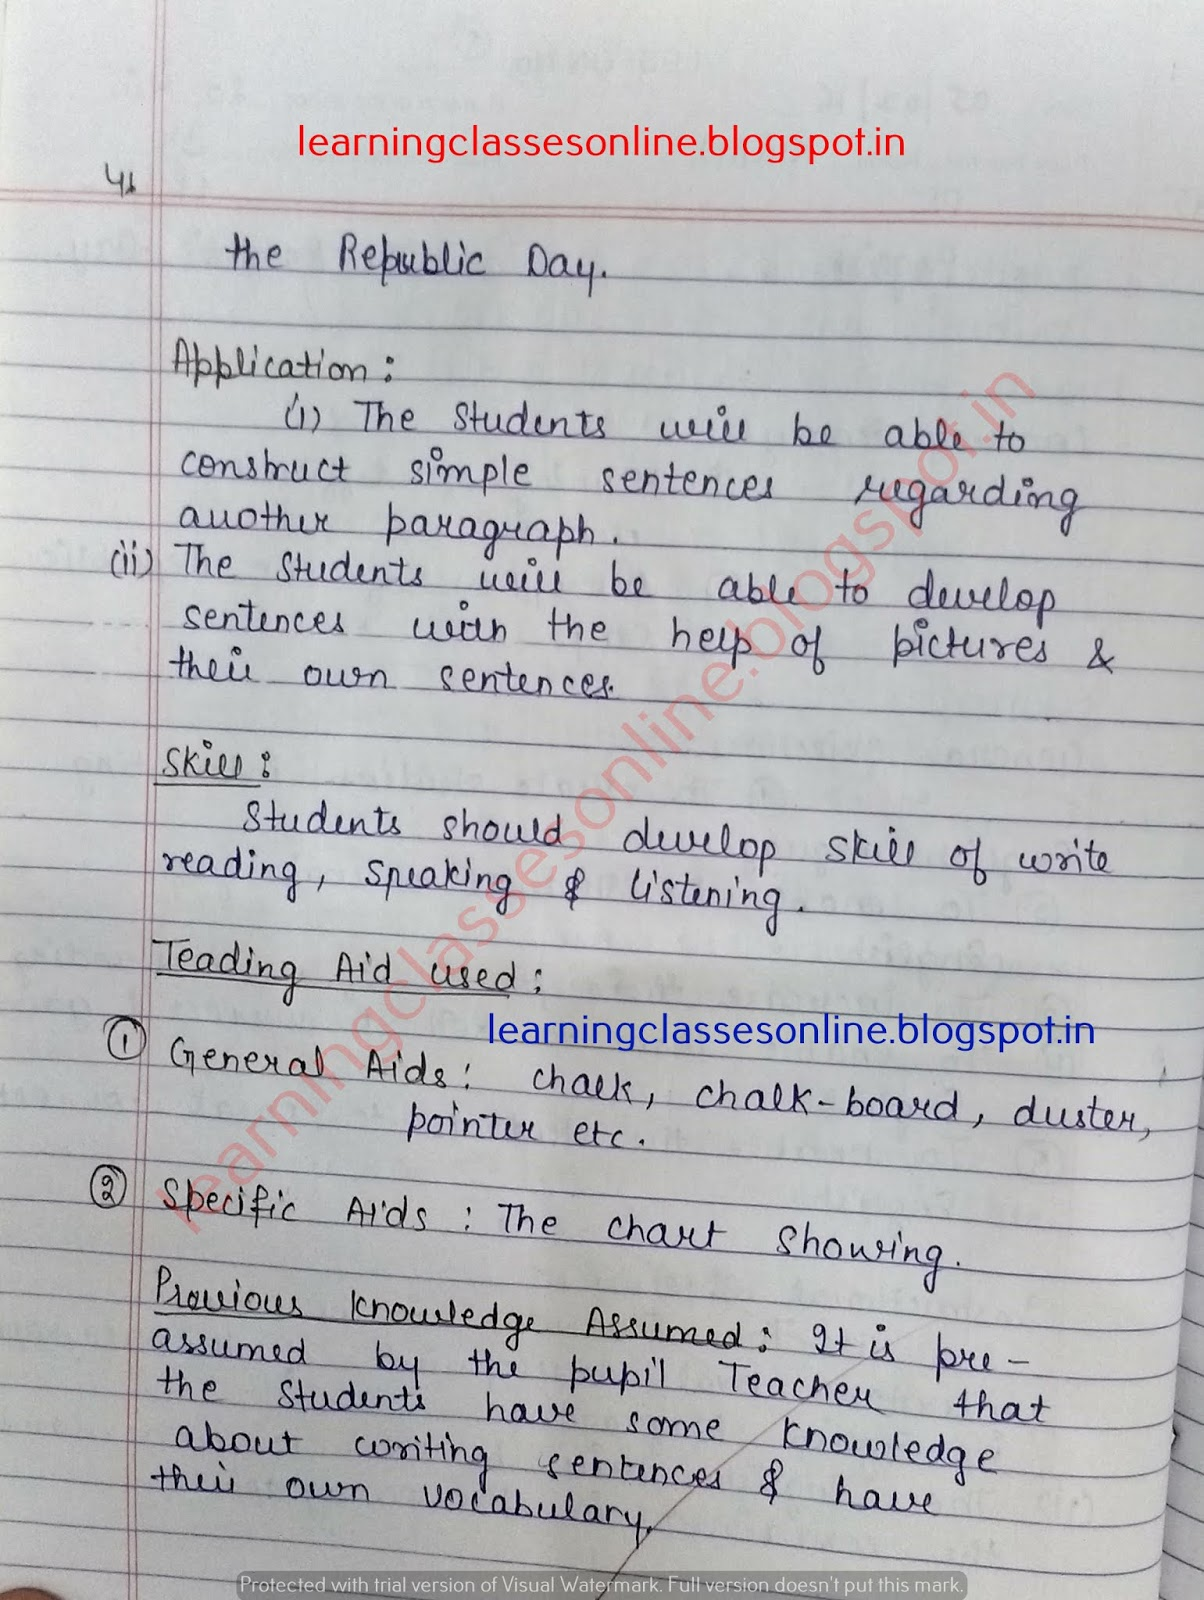 English Lesson Plan on Republic Day for New Teachers - Learning